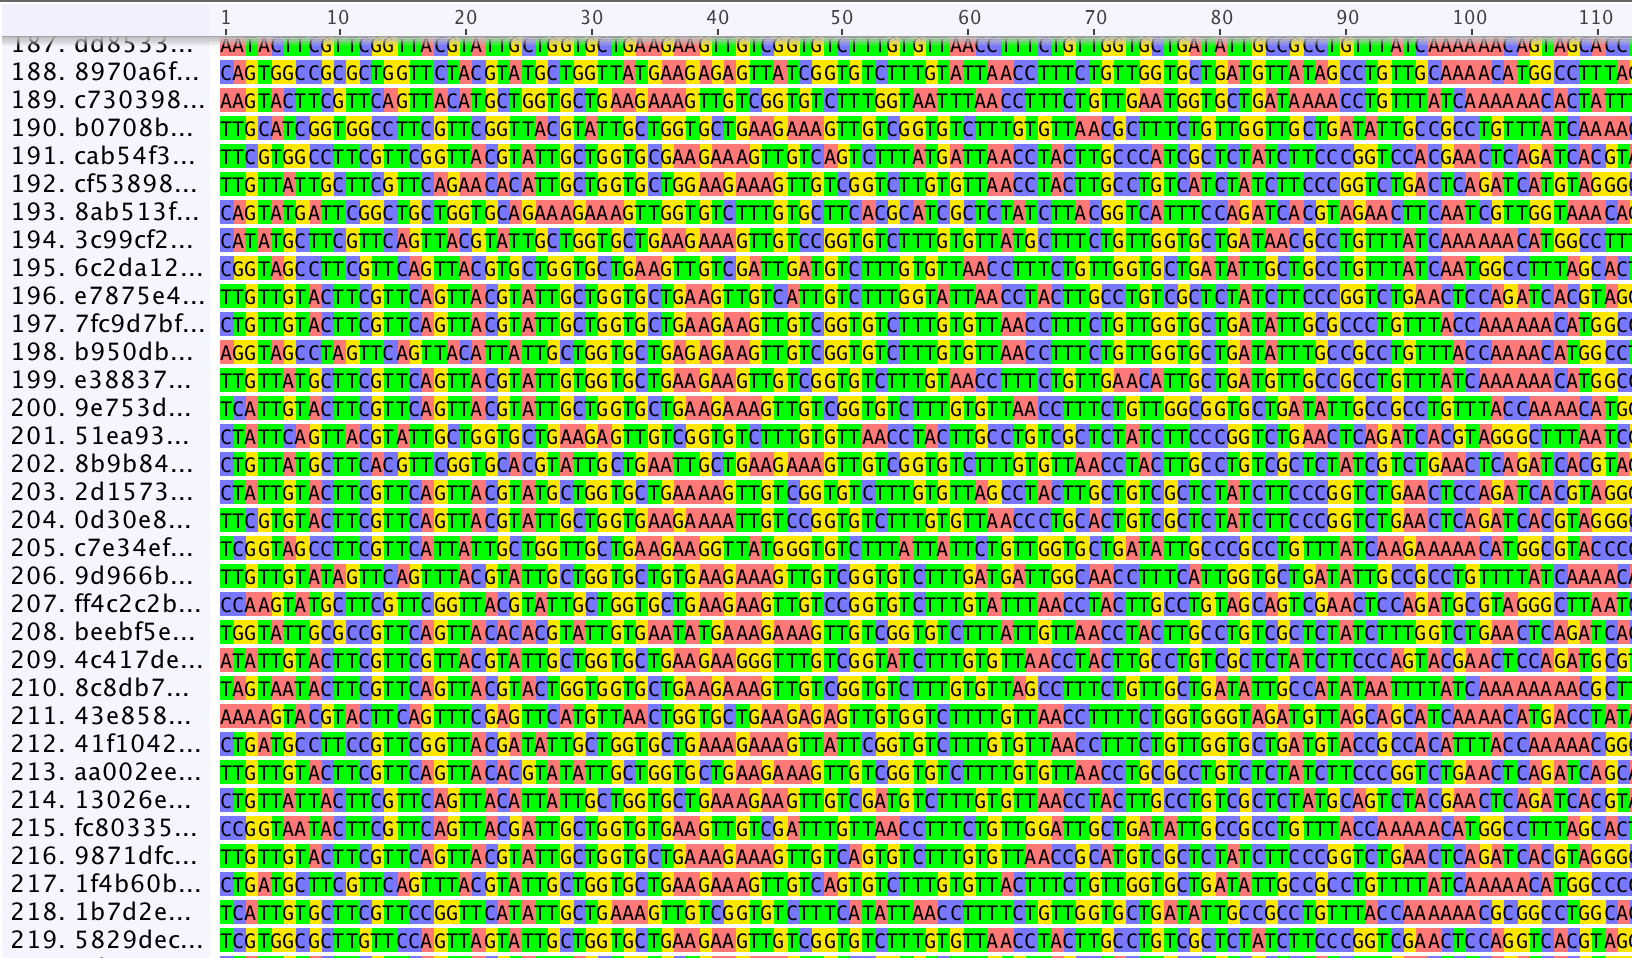 Screen shot of some of the raw barcode nanopore data